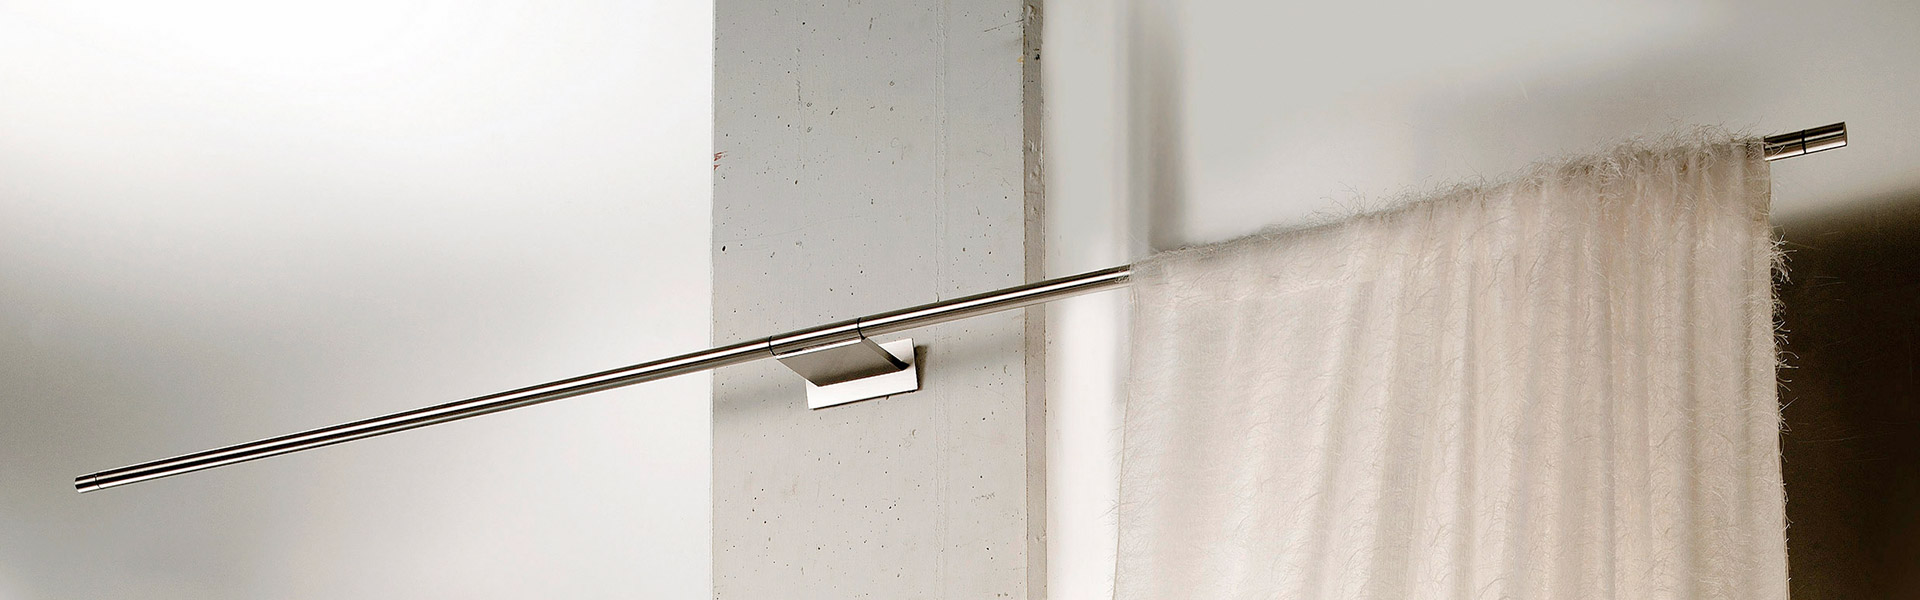 Fritsch-curtain-rod-2